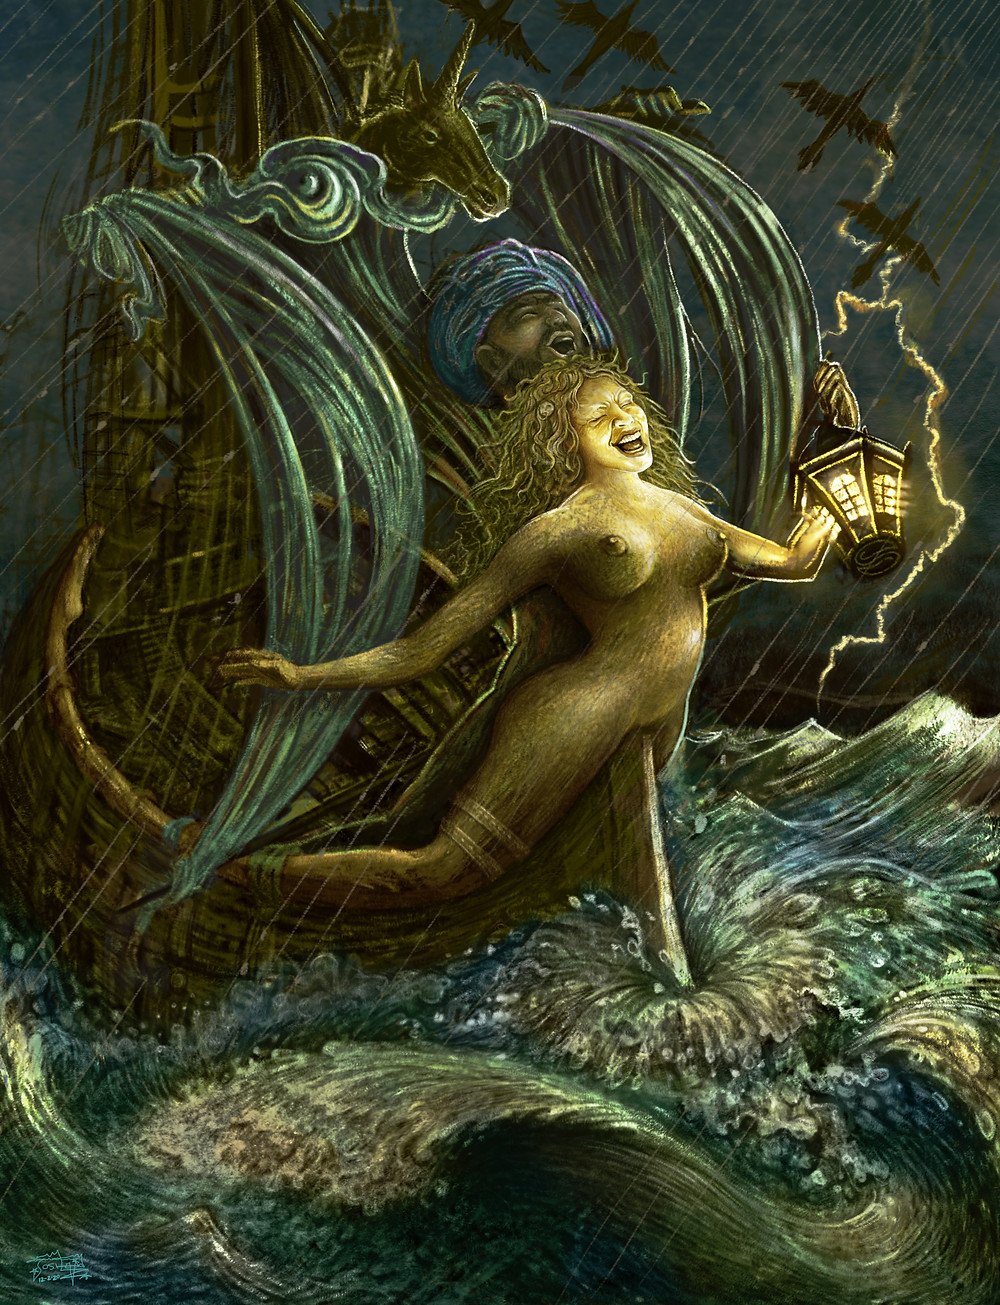 For those who know what words cannot speak. Sail on into the night and across the stormy ocean of existence.  This one of a kind original was painted by hand by Joshua S. Levin on Procreate, and sent like a message in a bottle to the block chain at 5000 x 6527 pixels.